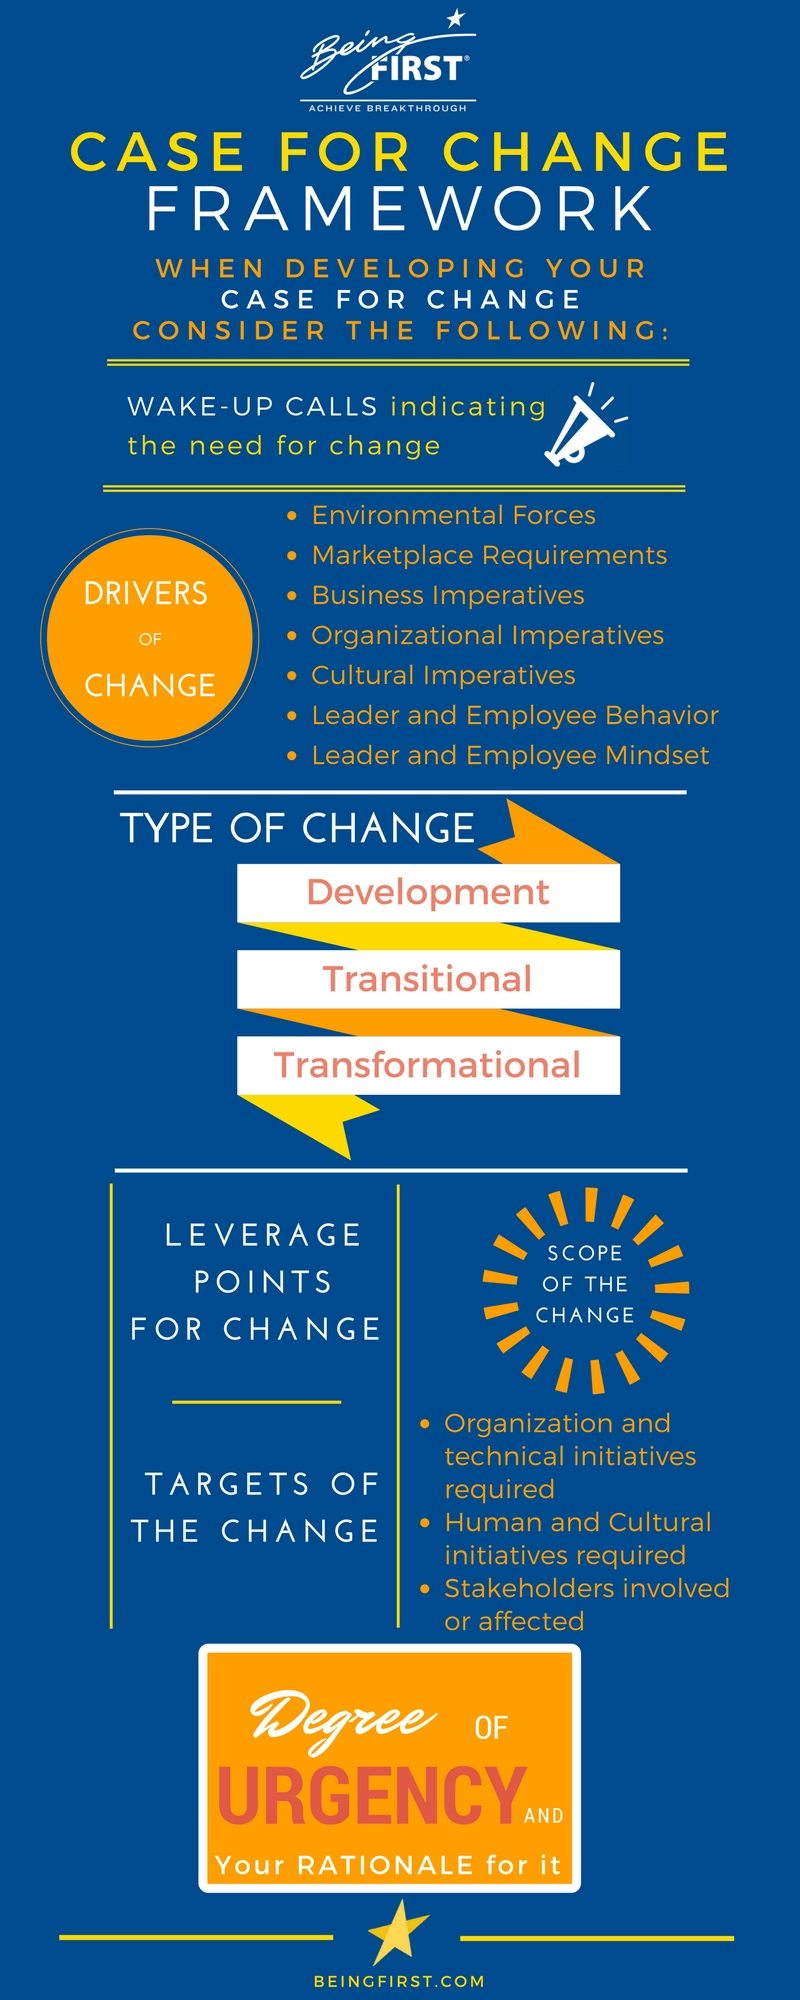 Tying your Organizational Case for Change to your Business Strategy Sets You Up for Success